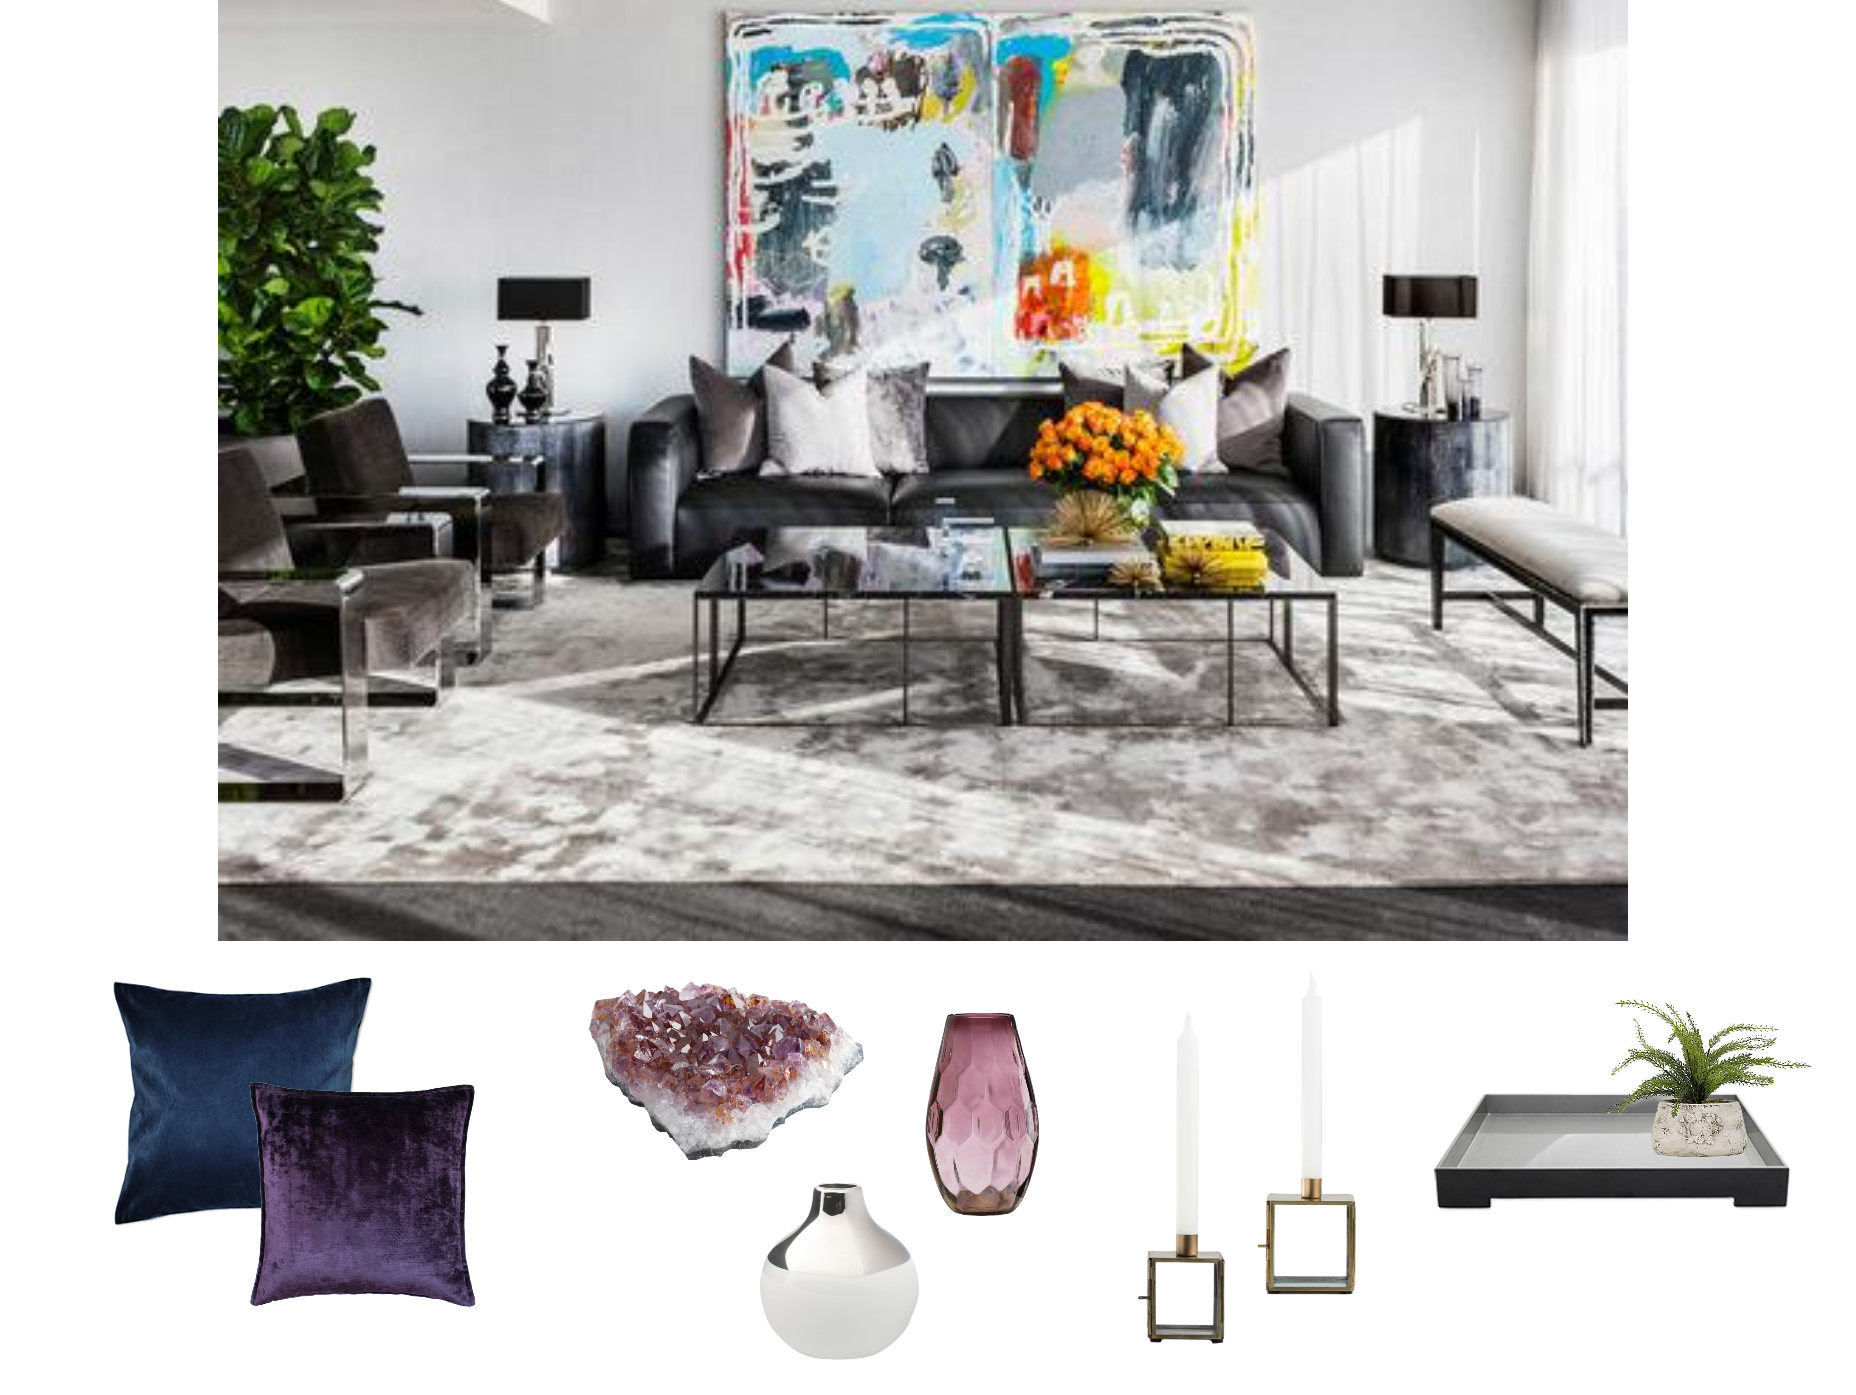 Online Interior Design Q A For Free About Finding The Perfect Accessories To Decorate Any Room